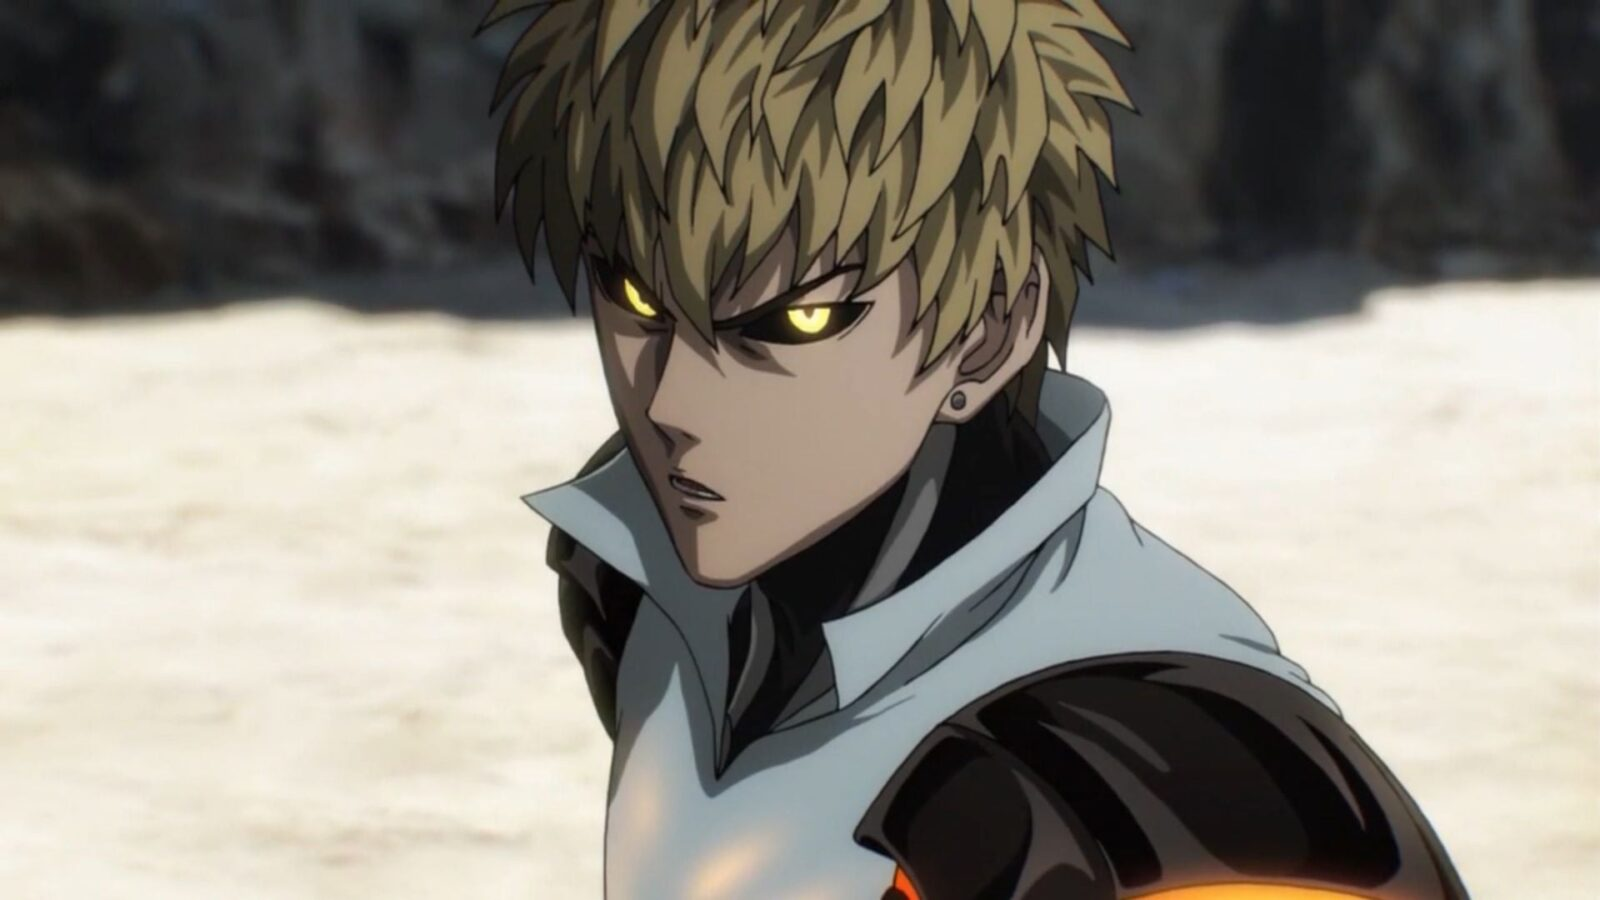 20 Genos One Punch Man Wallpapers Hd Download